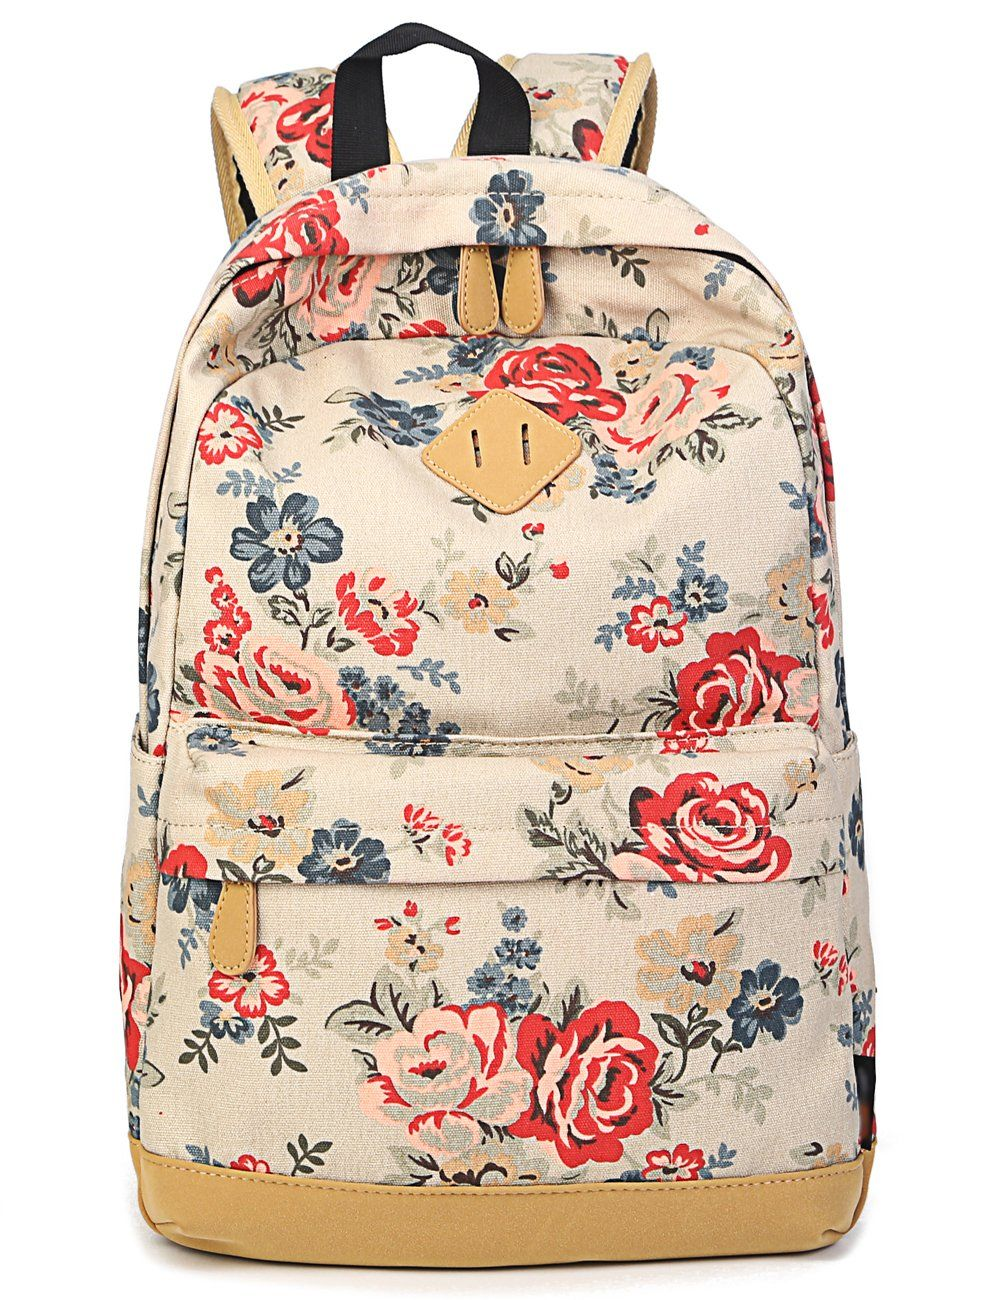 74f072390a2 Leaper Cute Floral Canvas Backpacks Casual Style School Bags Shoulder  Bags Travel Bags Vintage Rose